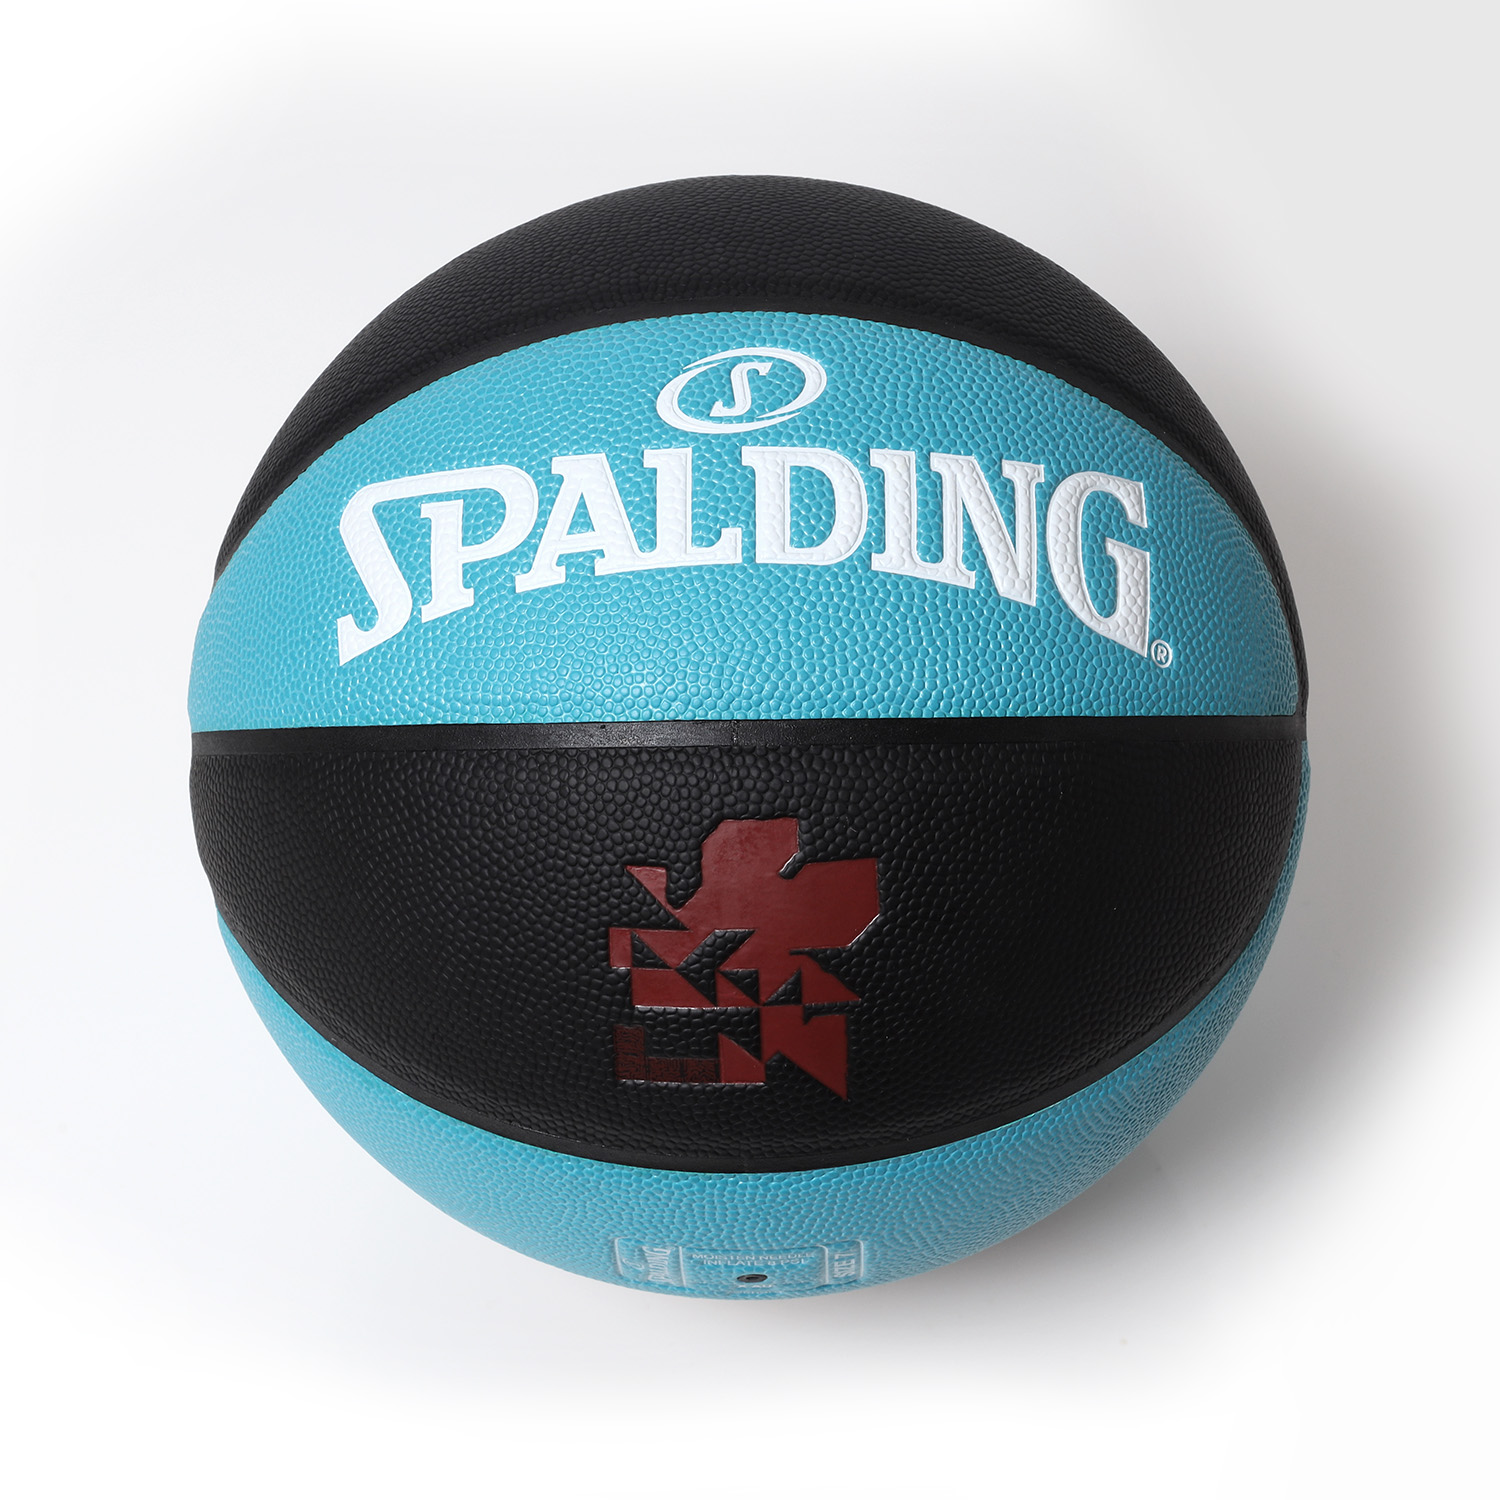 RADIO EVA Basketball by SPALDING (NERV×WILLE)